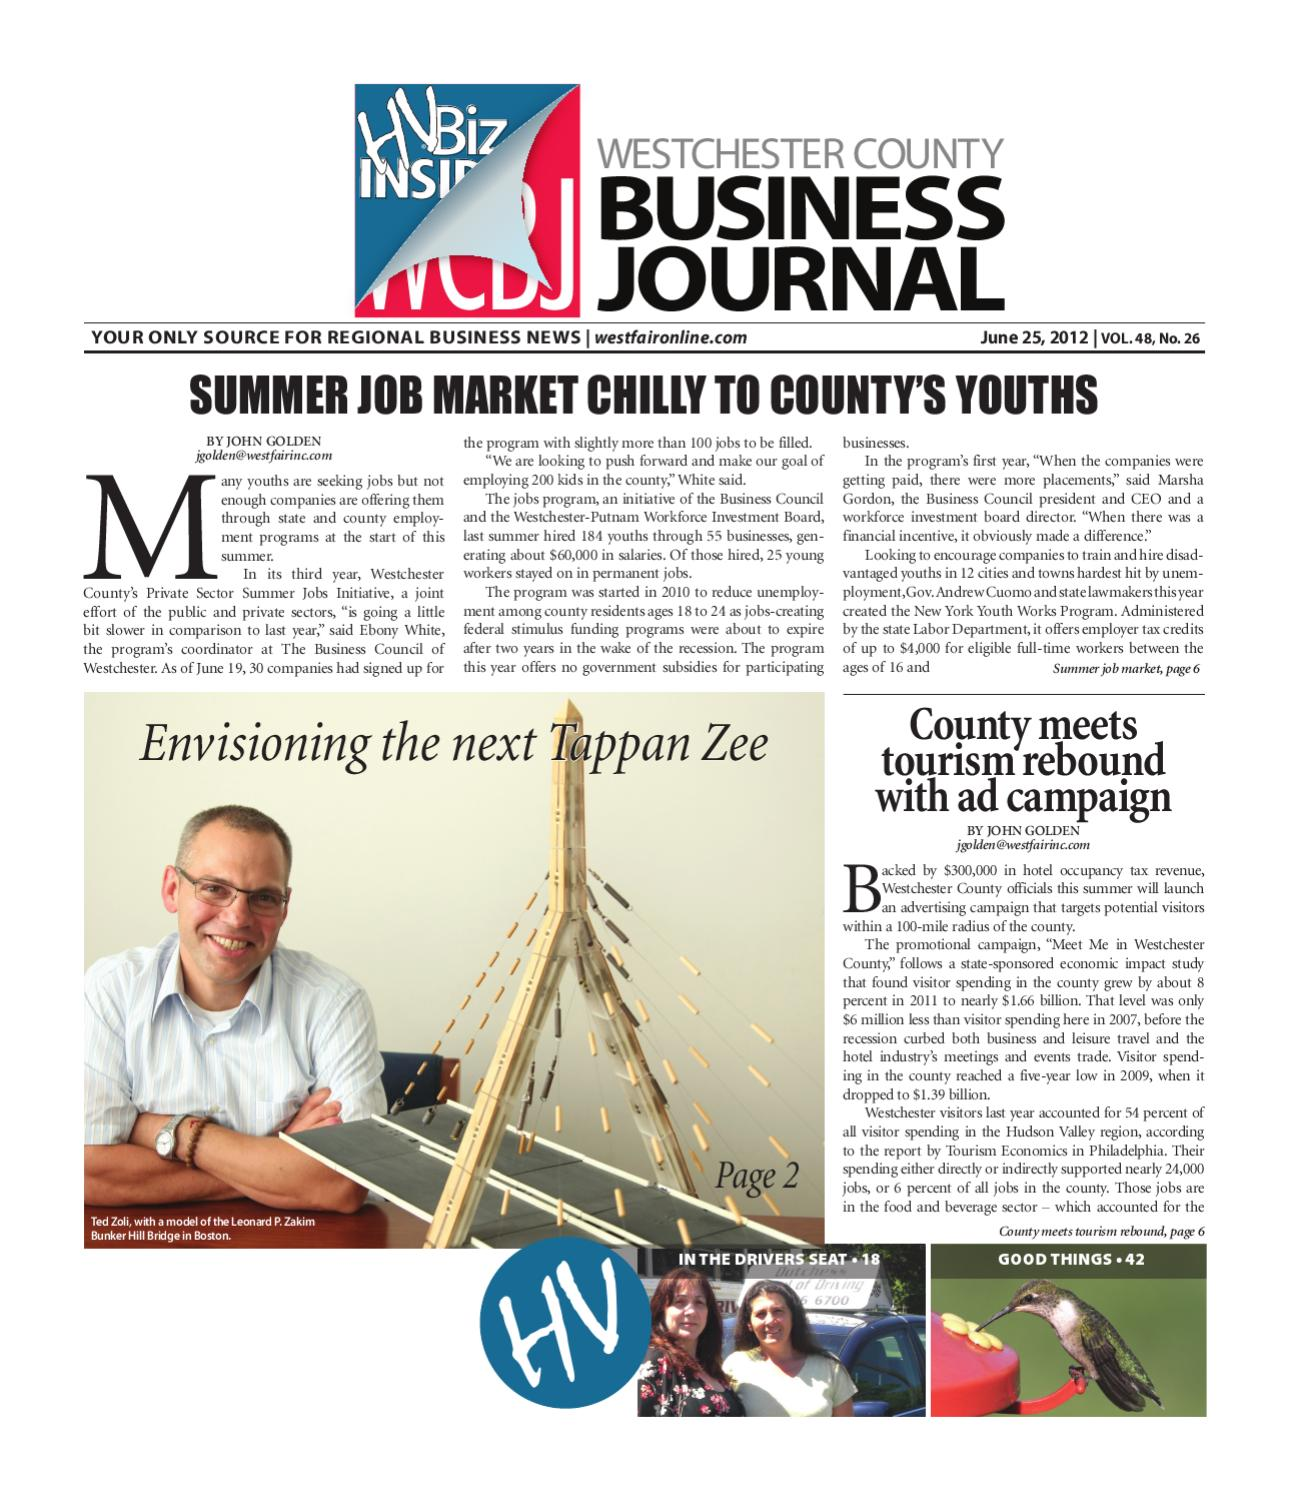 westchester county business journal 06 25 12 issue by wag magazine